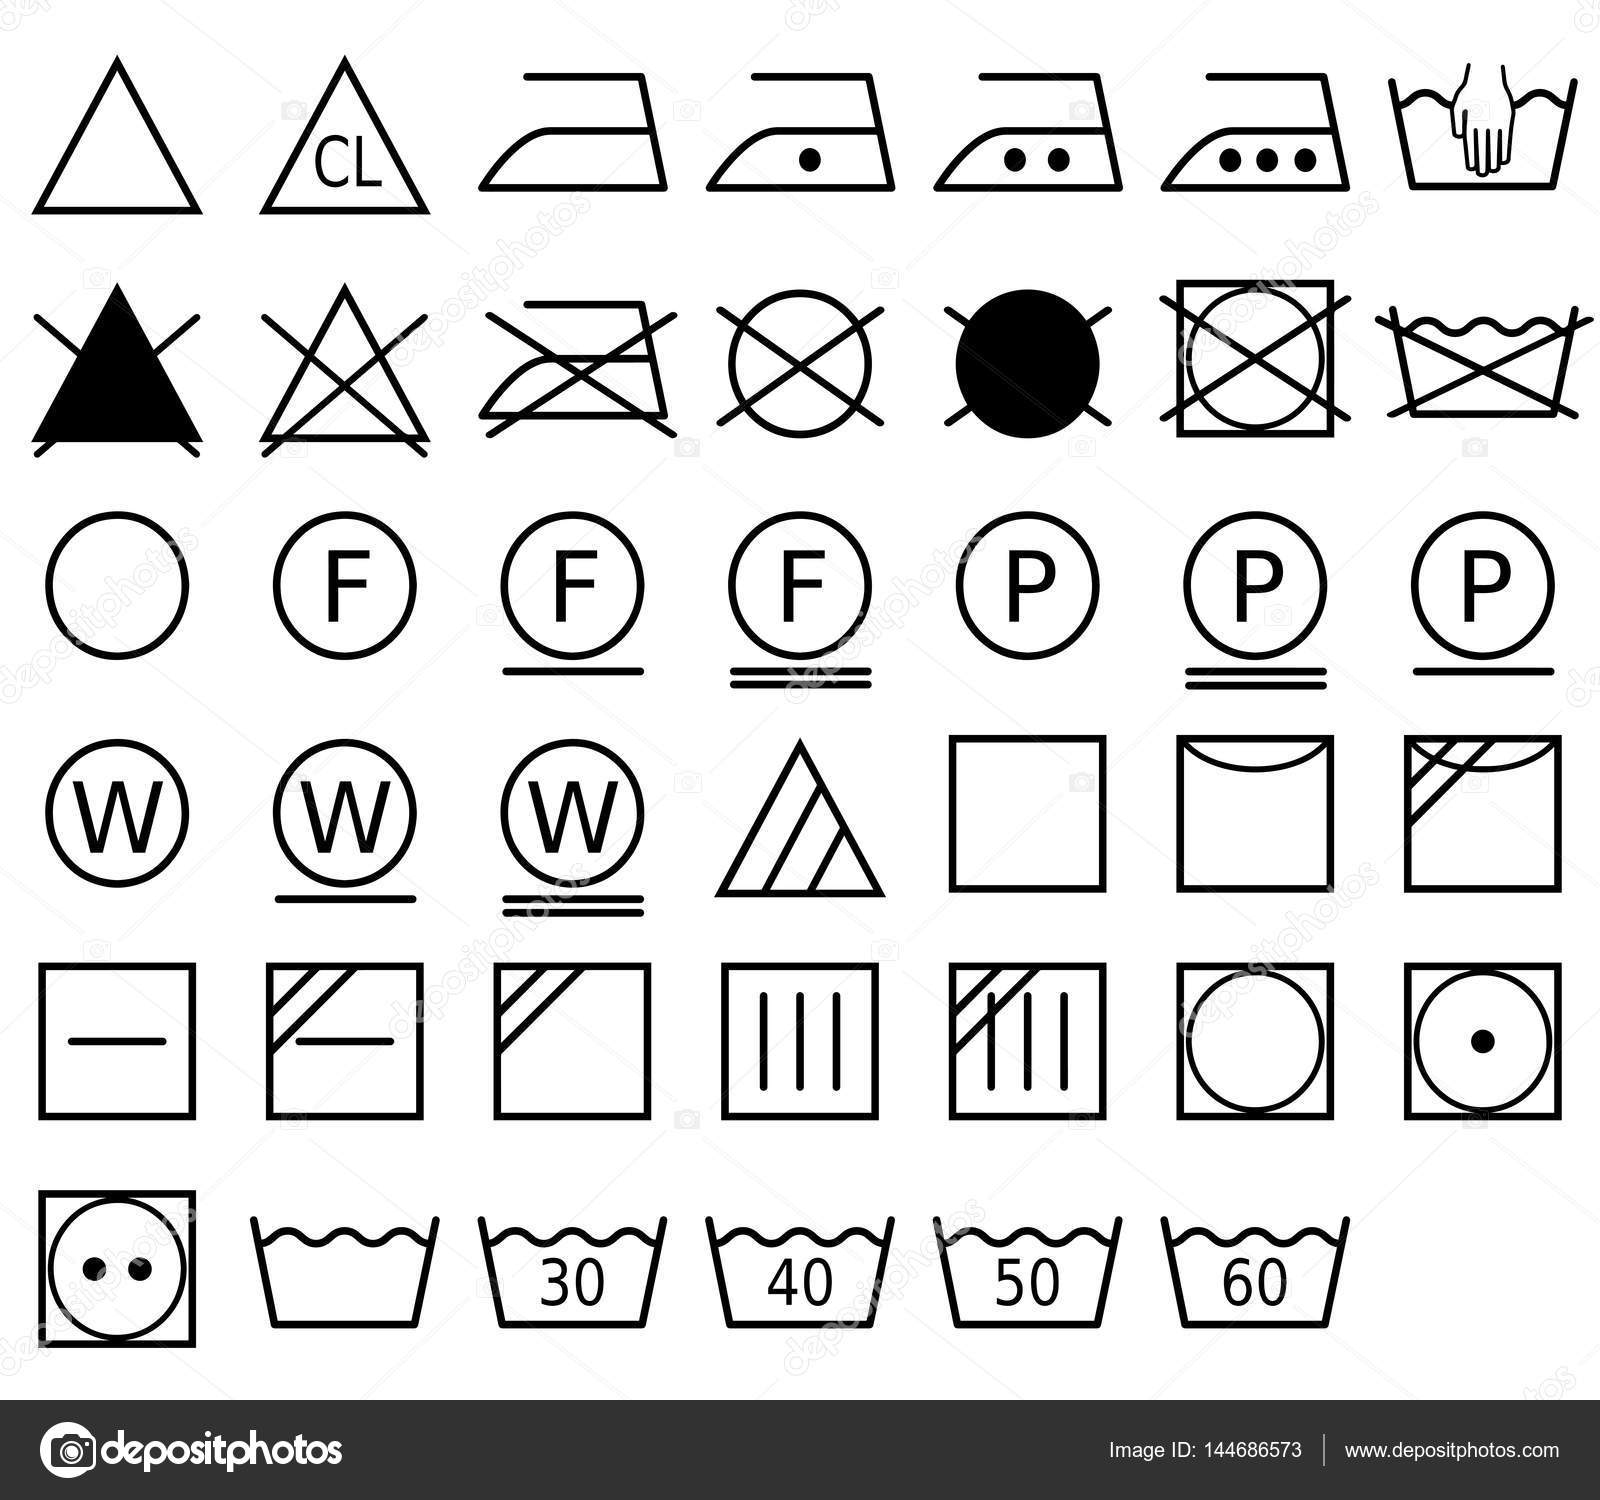 A laundry symbol also called a care symbol stock vector a laundry symbol also called a care symbol is a pictogram which represents a method of washing vector format vector by promesastudio biocorpaavc Image collections